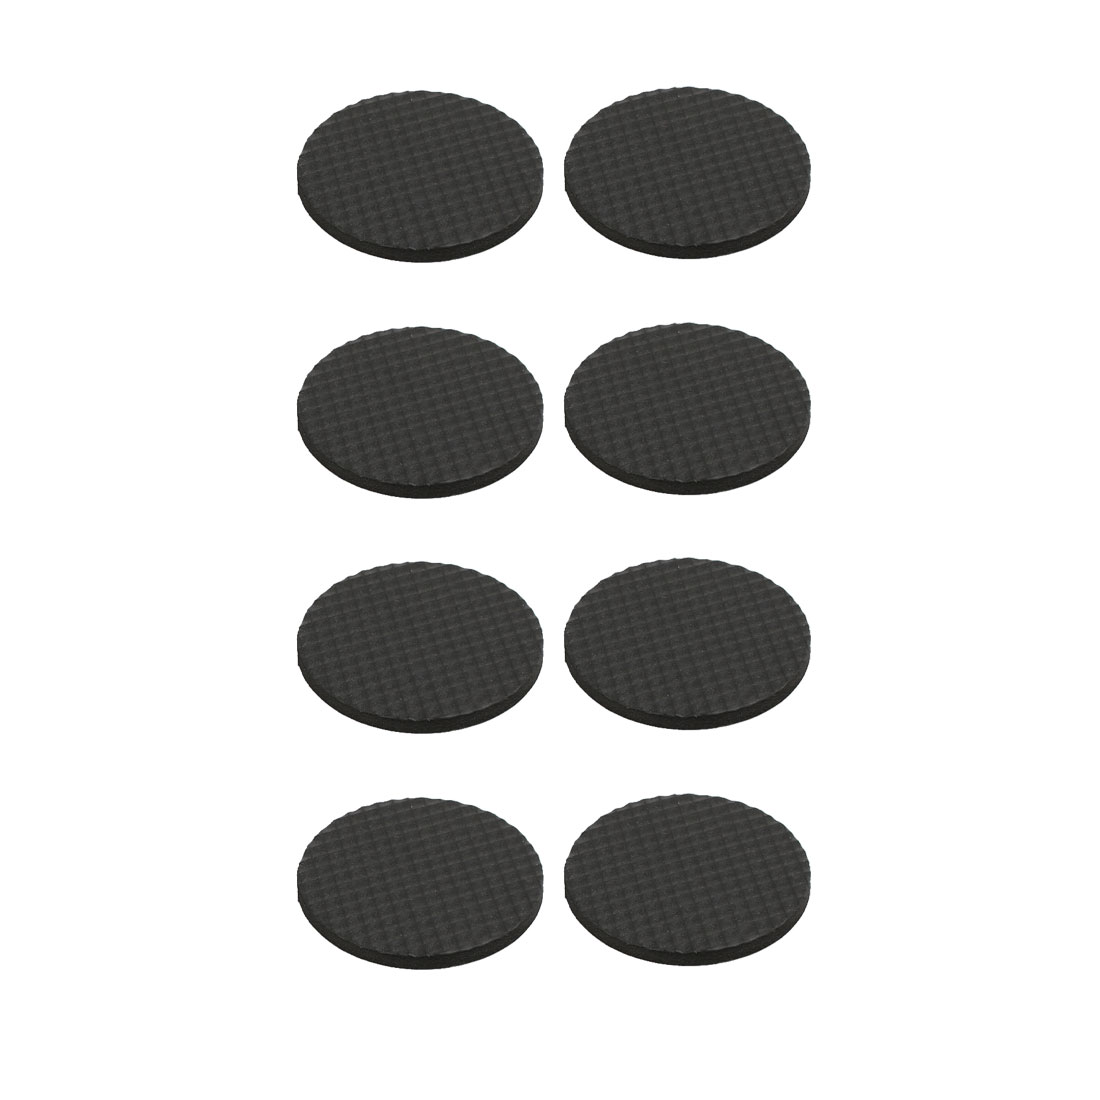 Rubber Tables Chairs Bed Round Shape Self Adhesive Protection Pads Black 8pcs